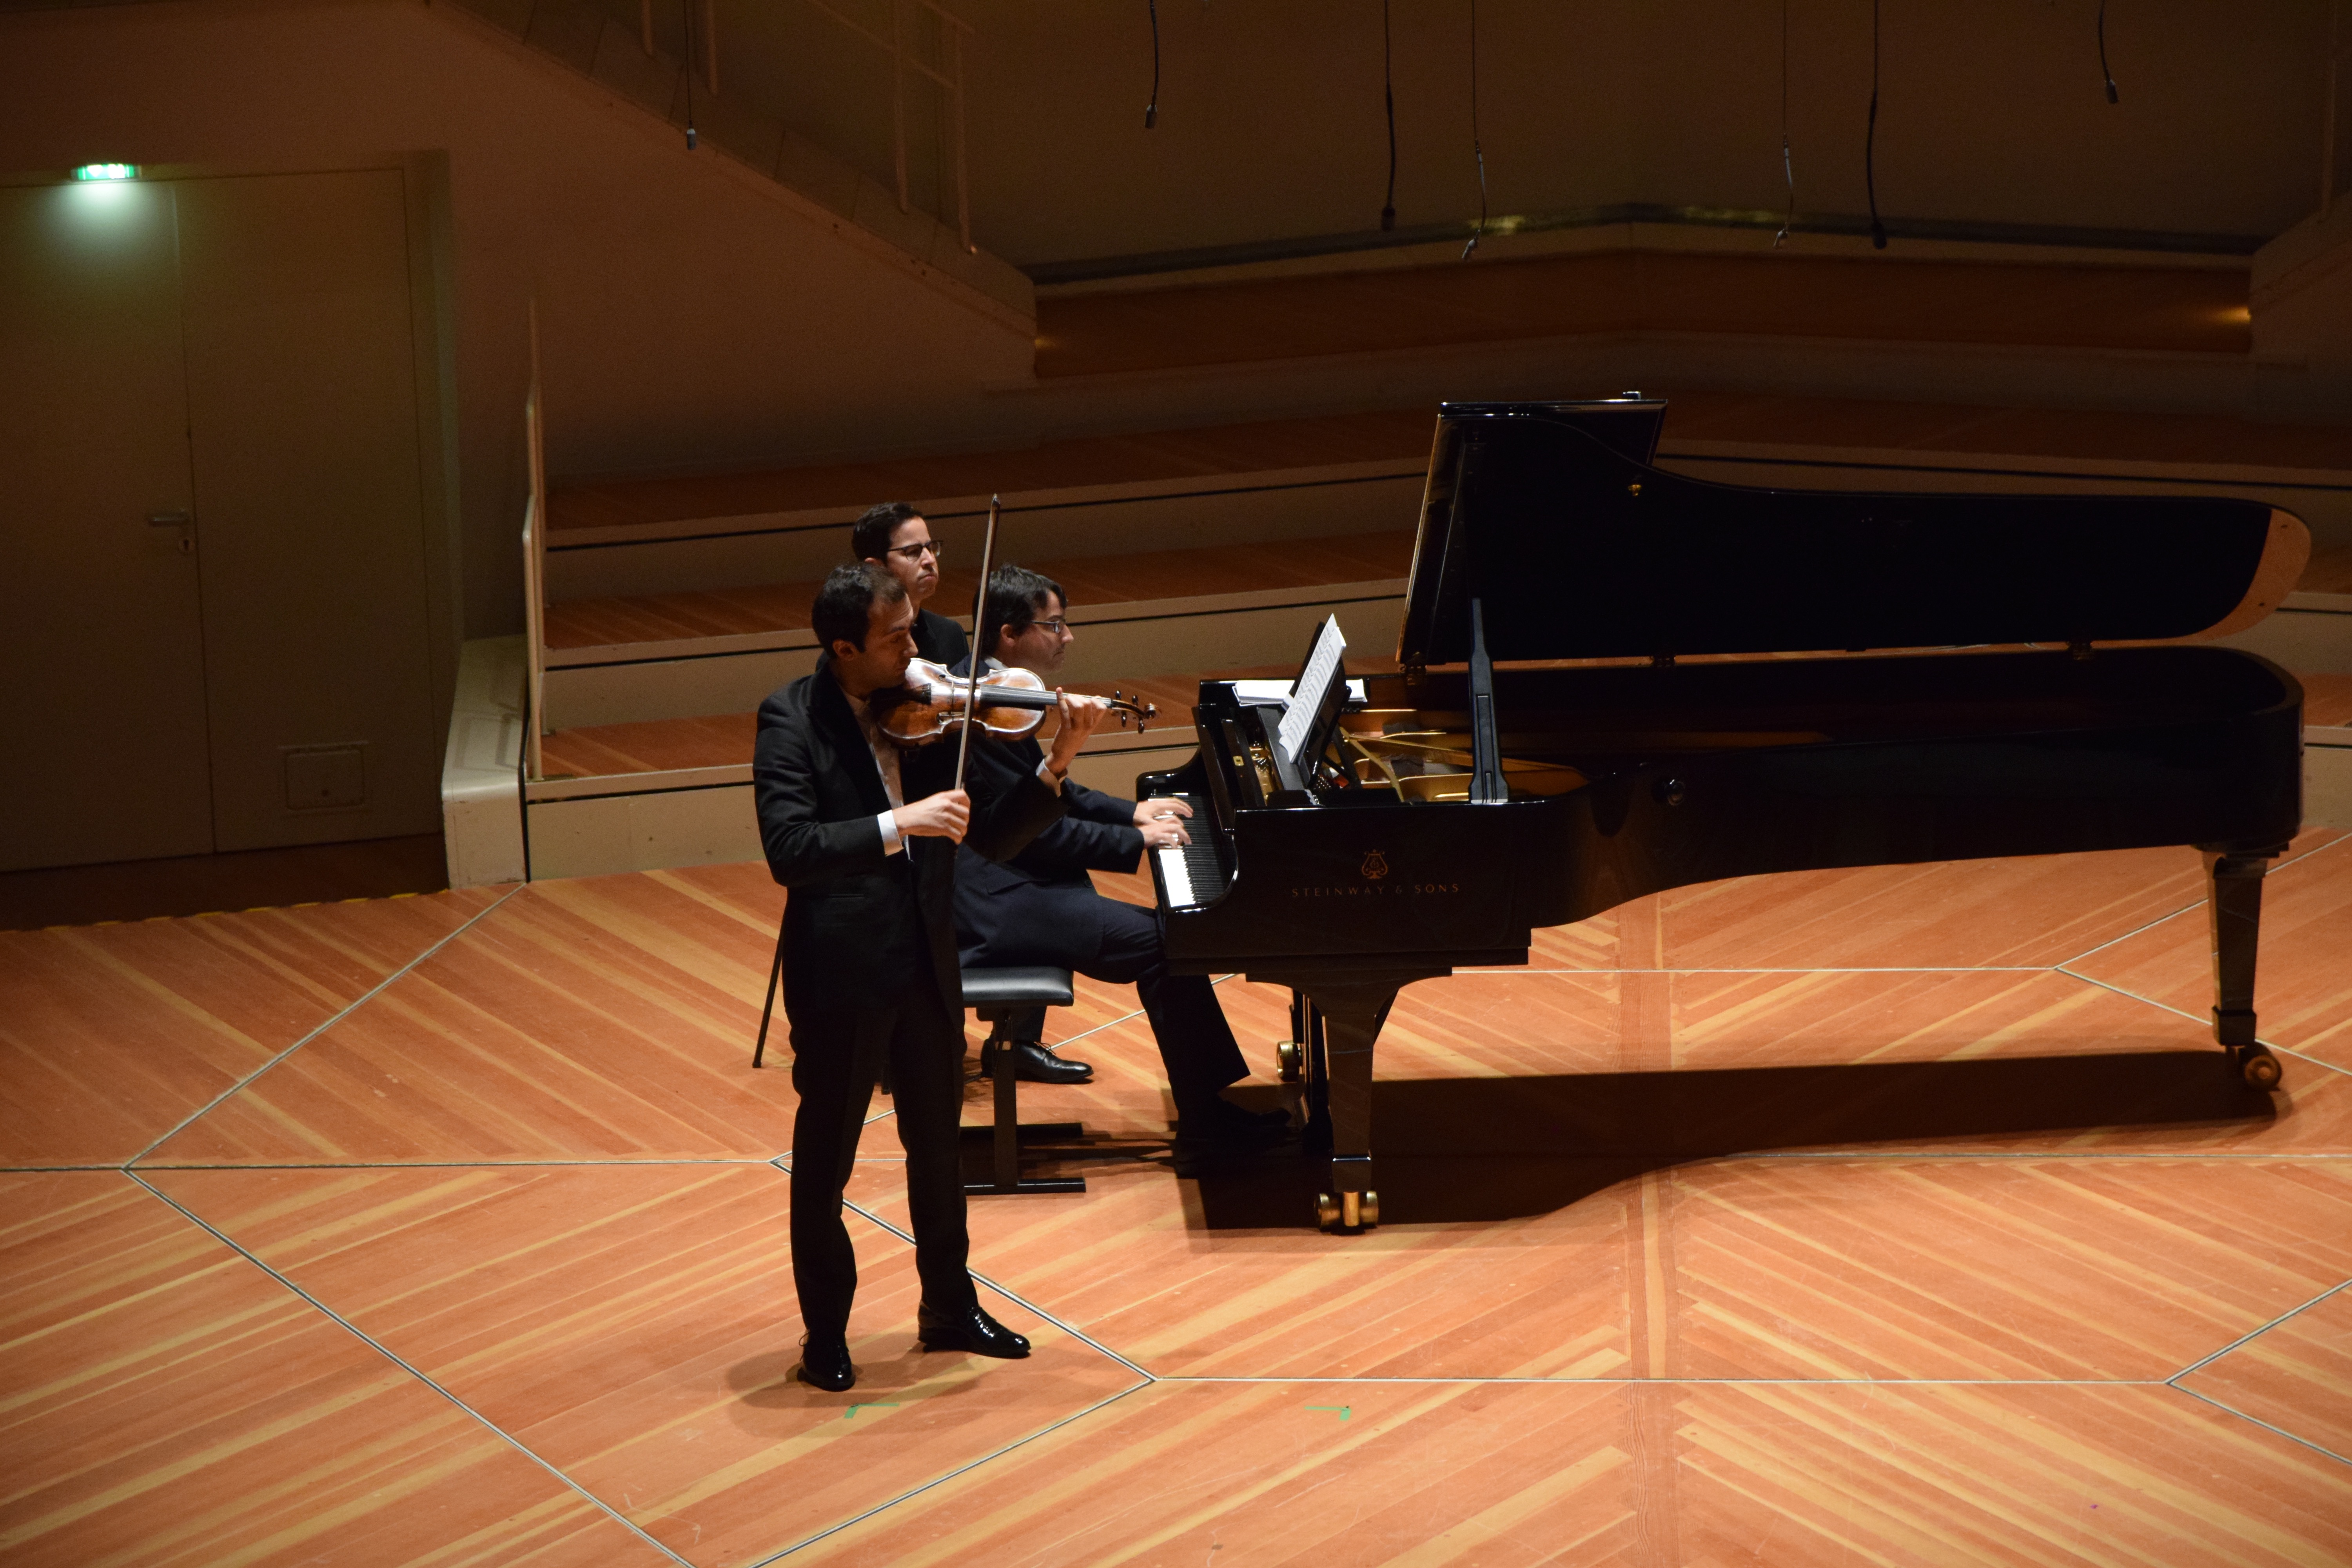 berliner music competition 11